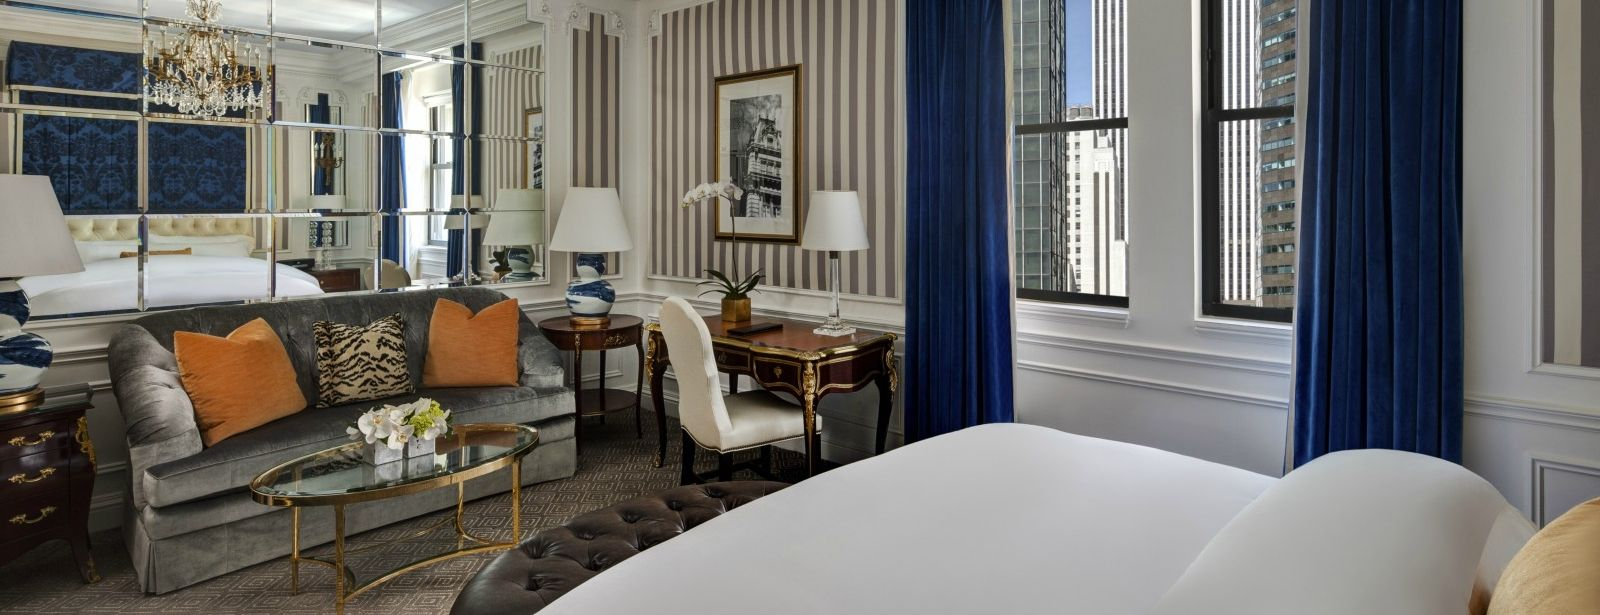 Superior Guest Room | The St. Regis New York